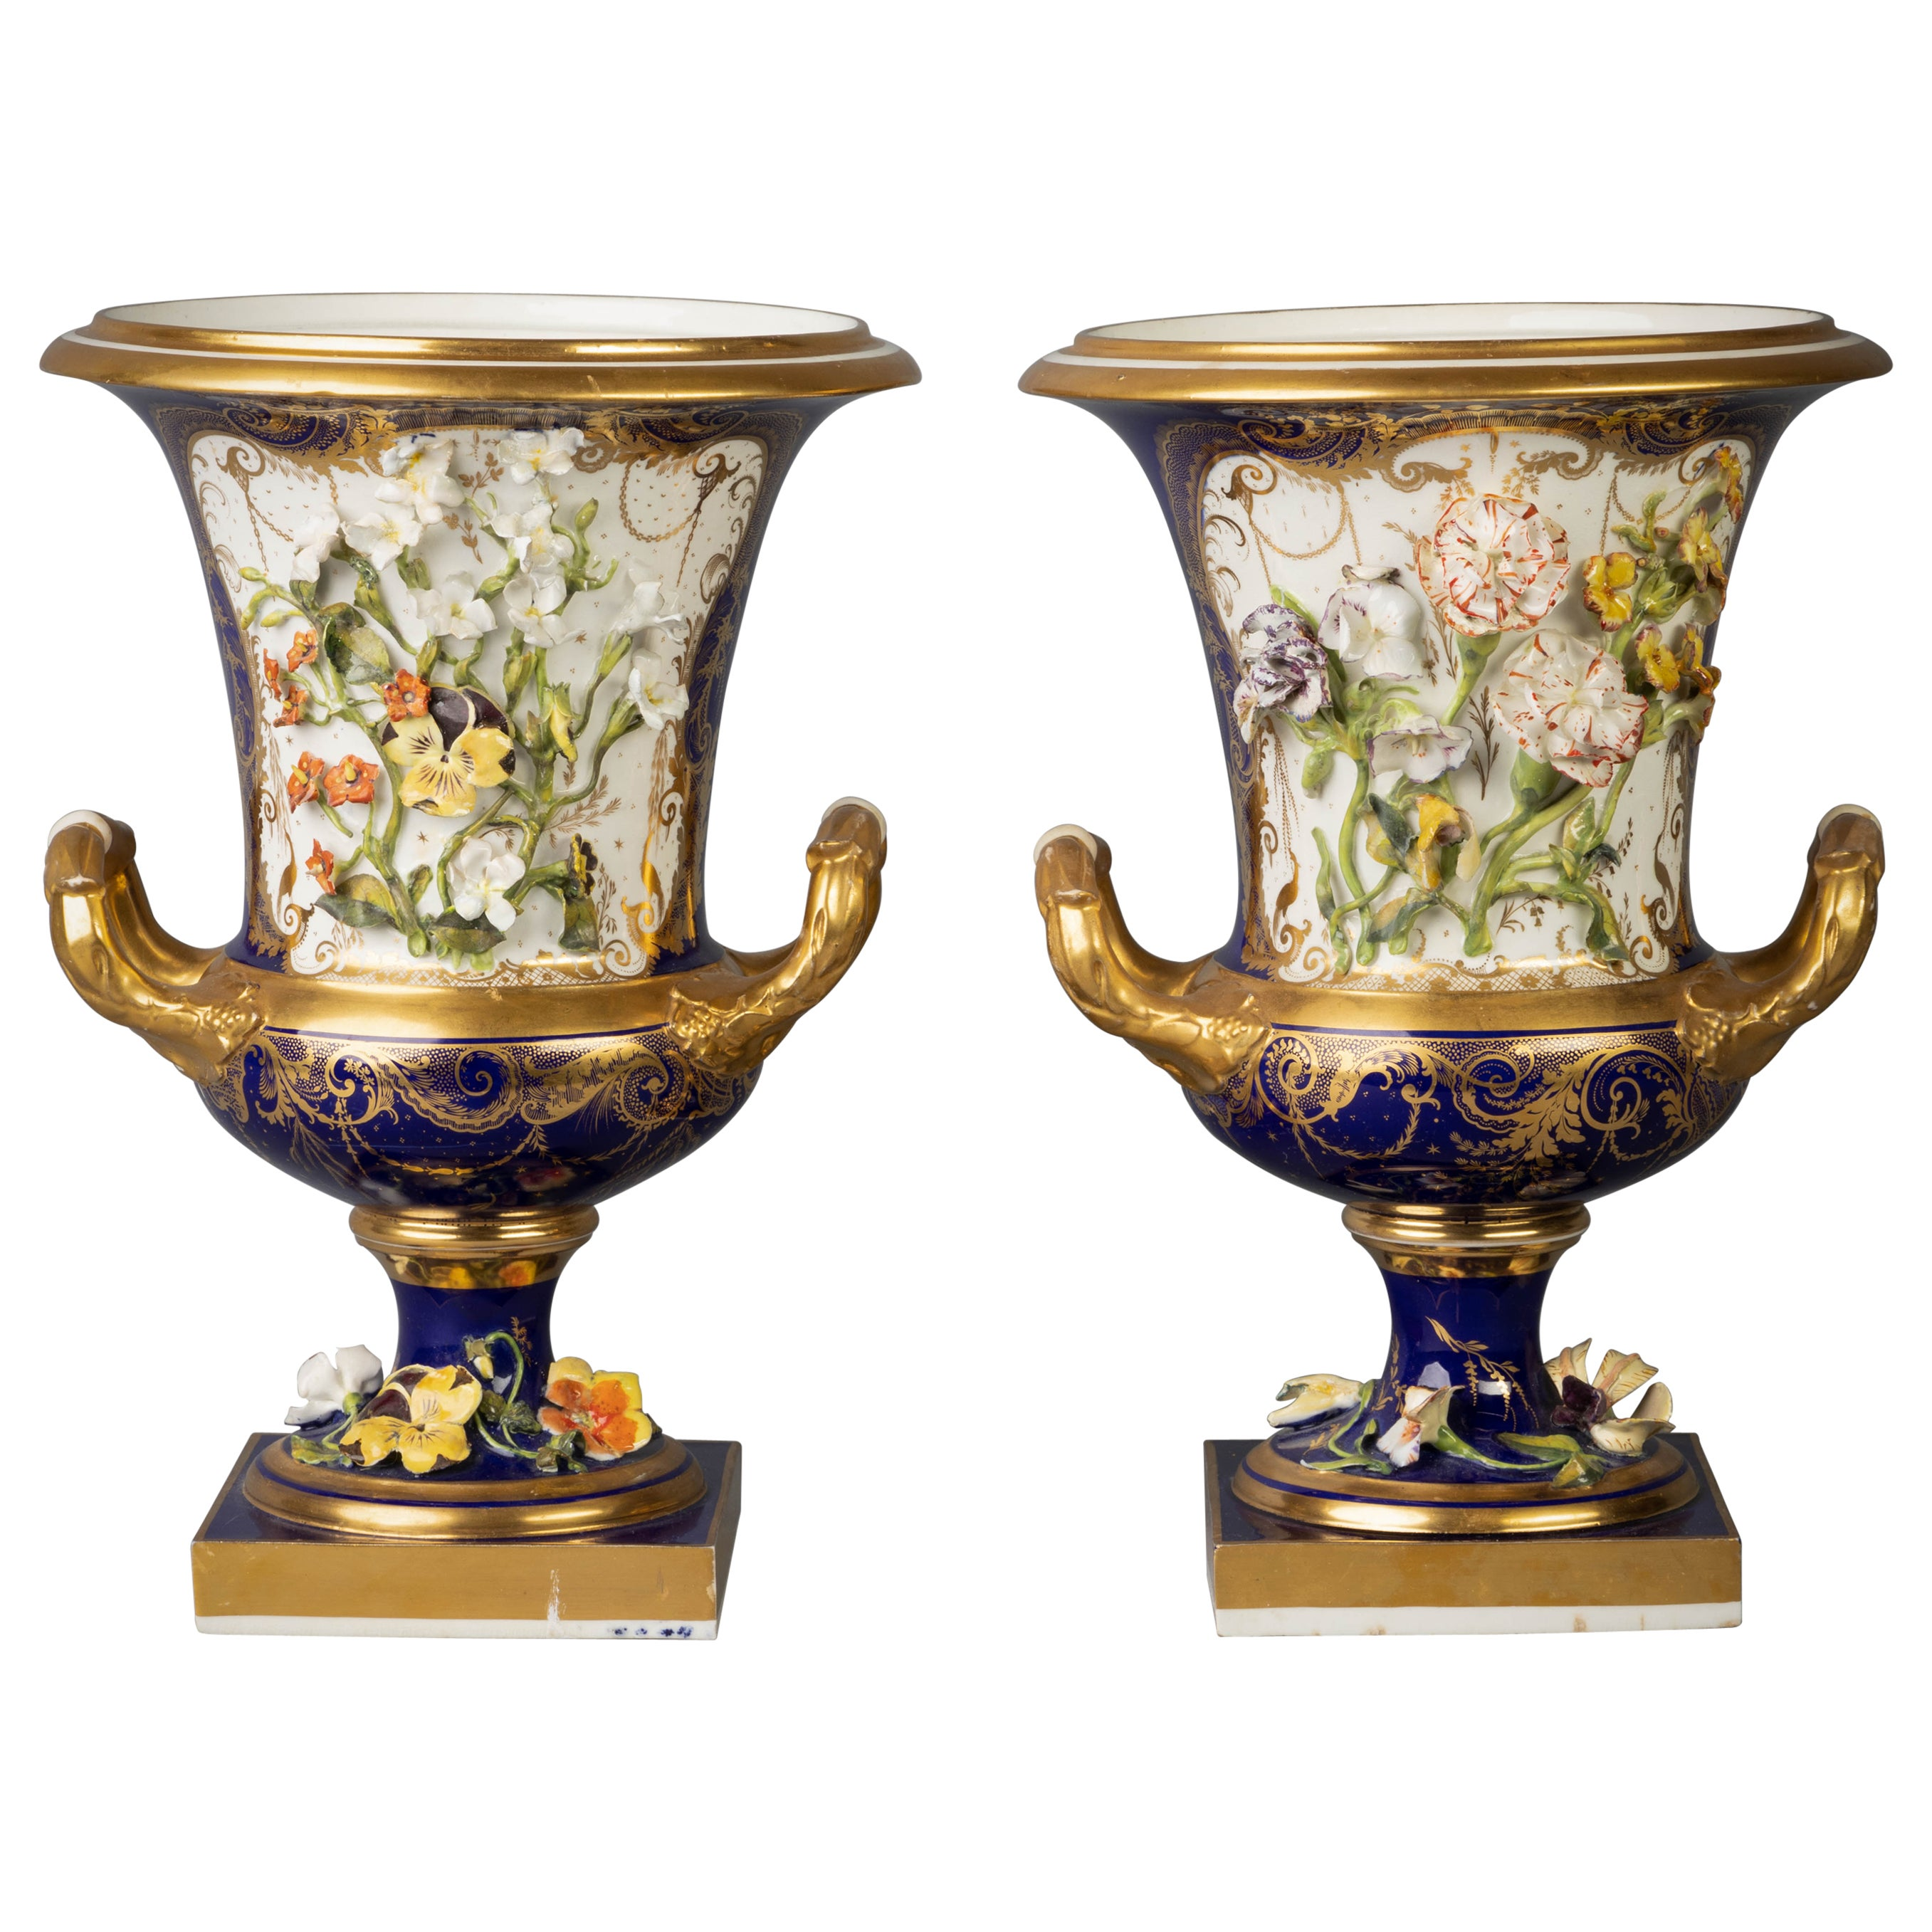 Pair of English Porcelain Two-Handled Vases, Derby, circa 1820